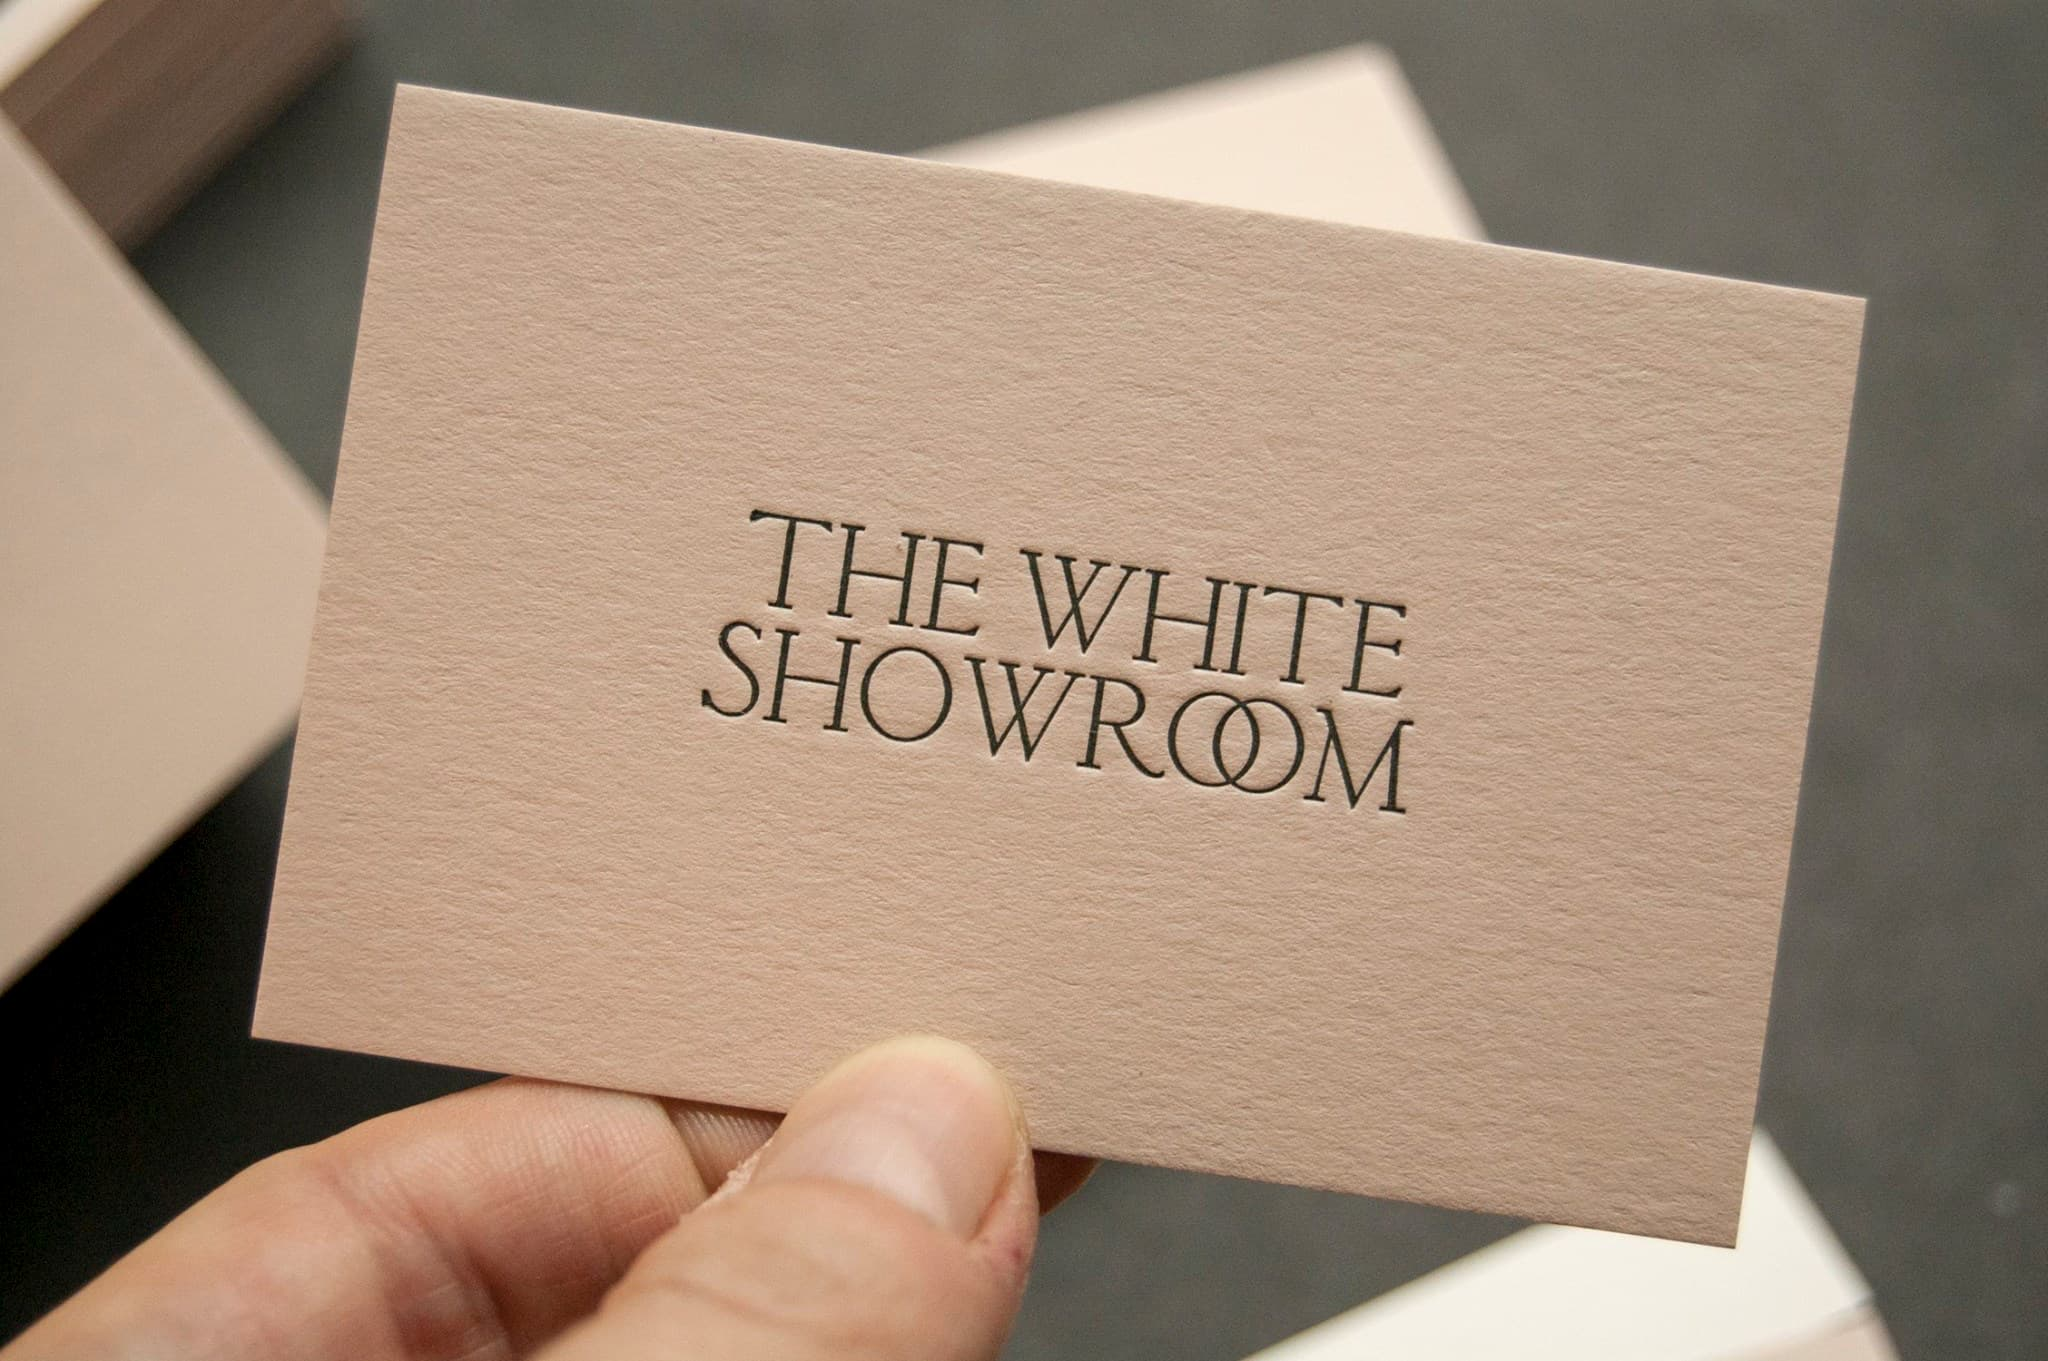 The White Showroom logo